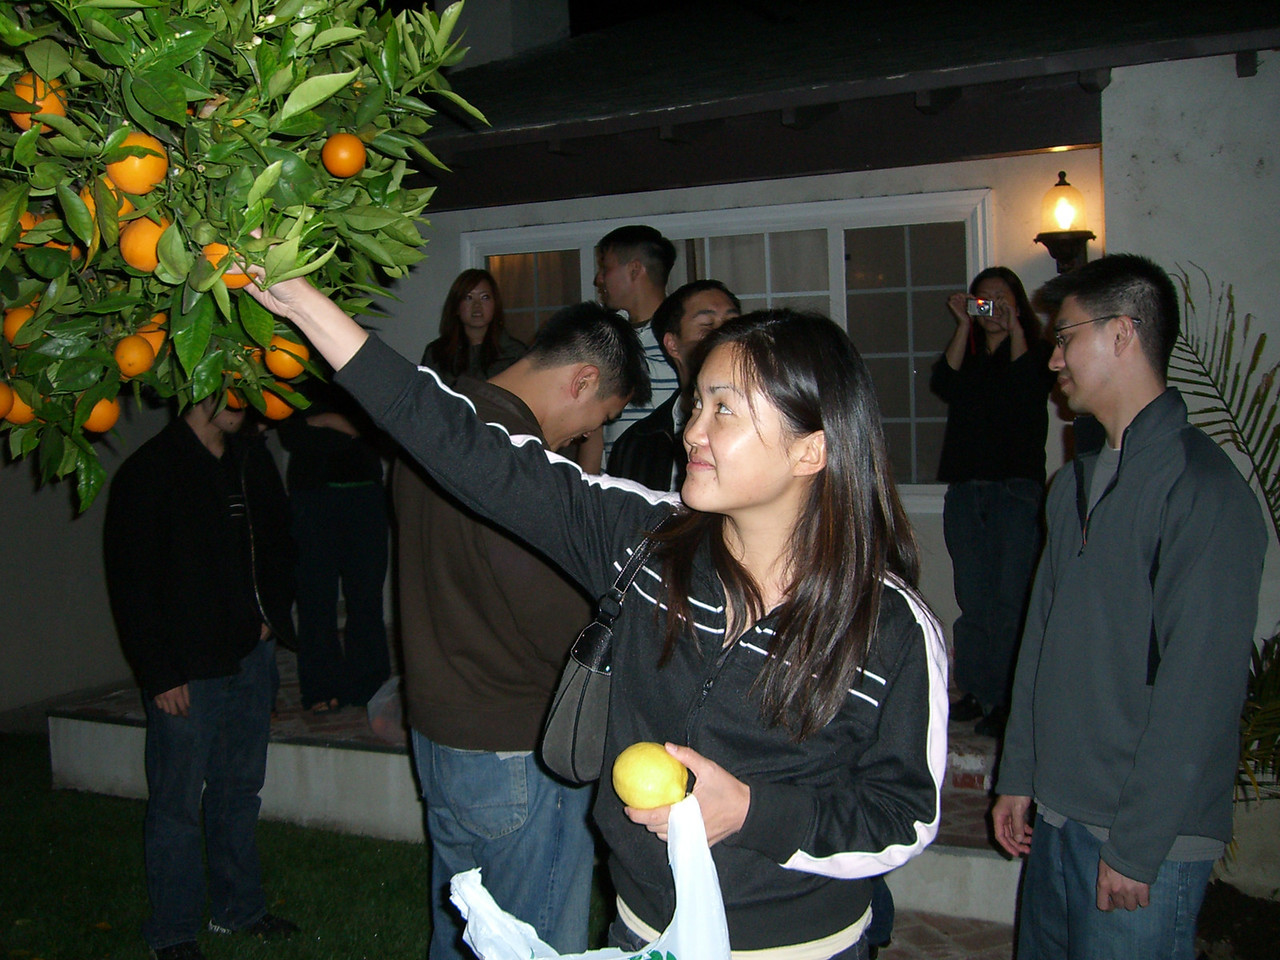 2006 05 05 Fri - Old EFC'ers dinner in LA - Bernice Chen @ Chris & Josephine's orange tree